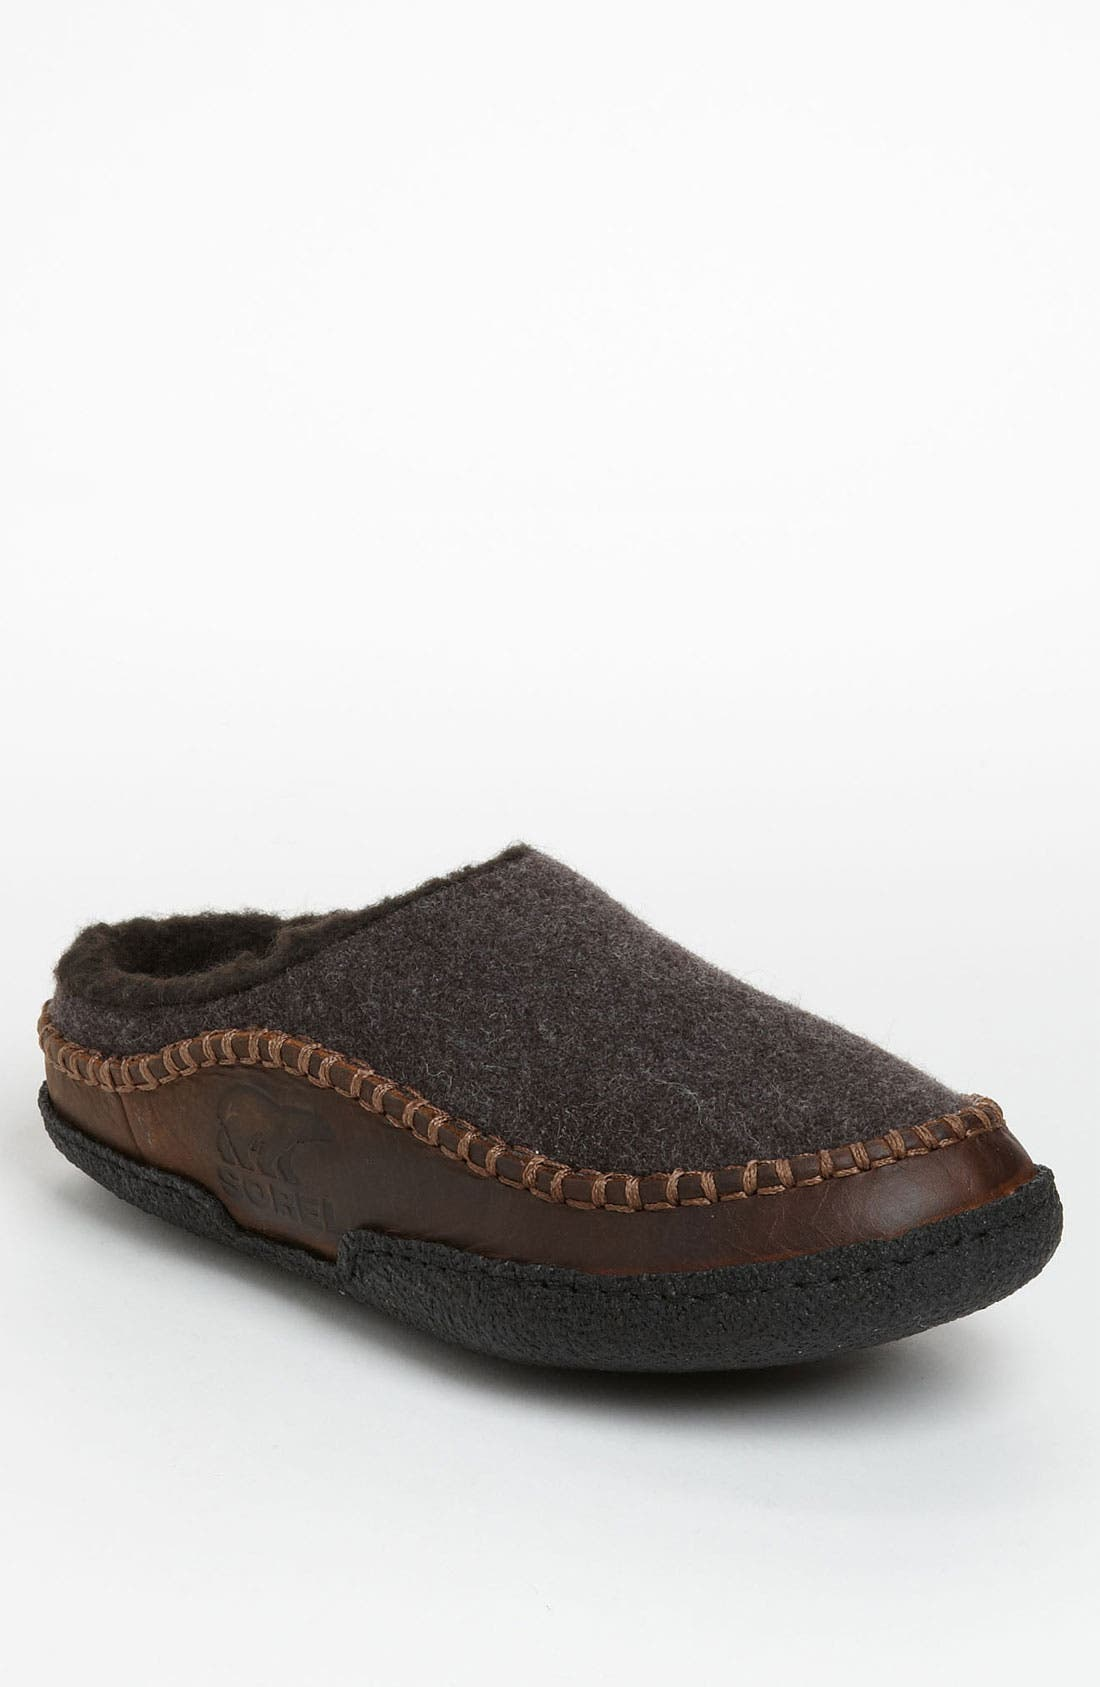 Alternate Image 1 Selected - Sorel 'Falcon Ridge' Slipper